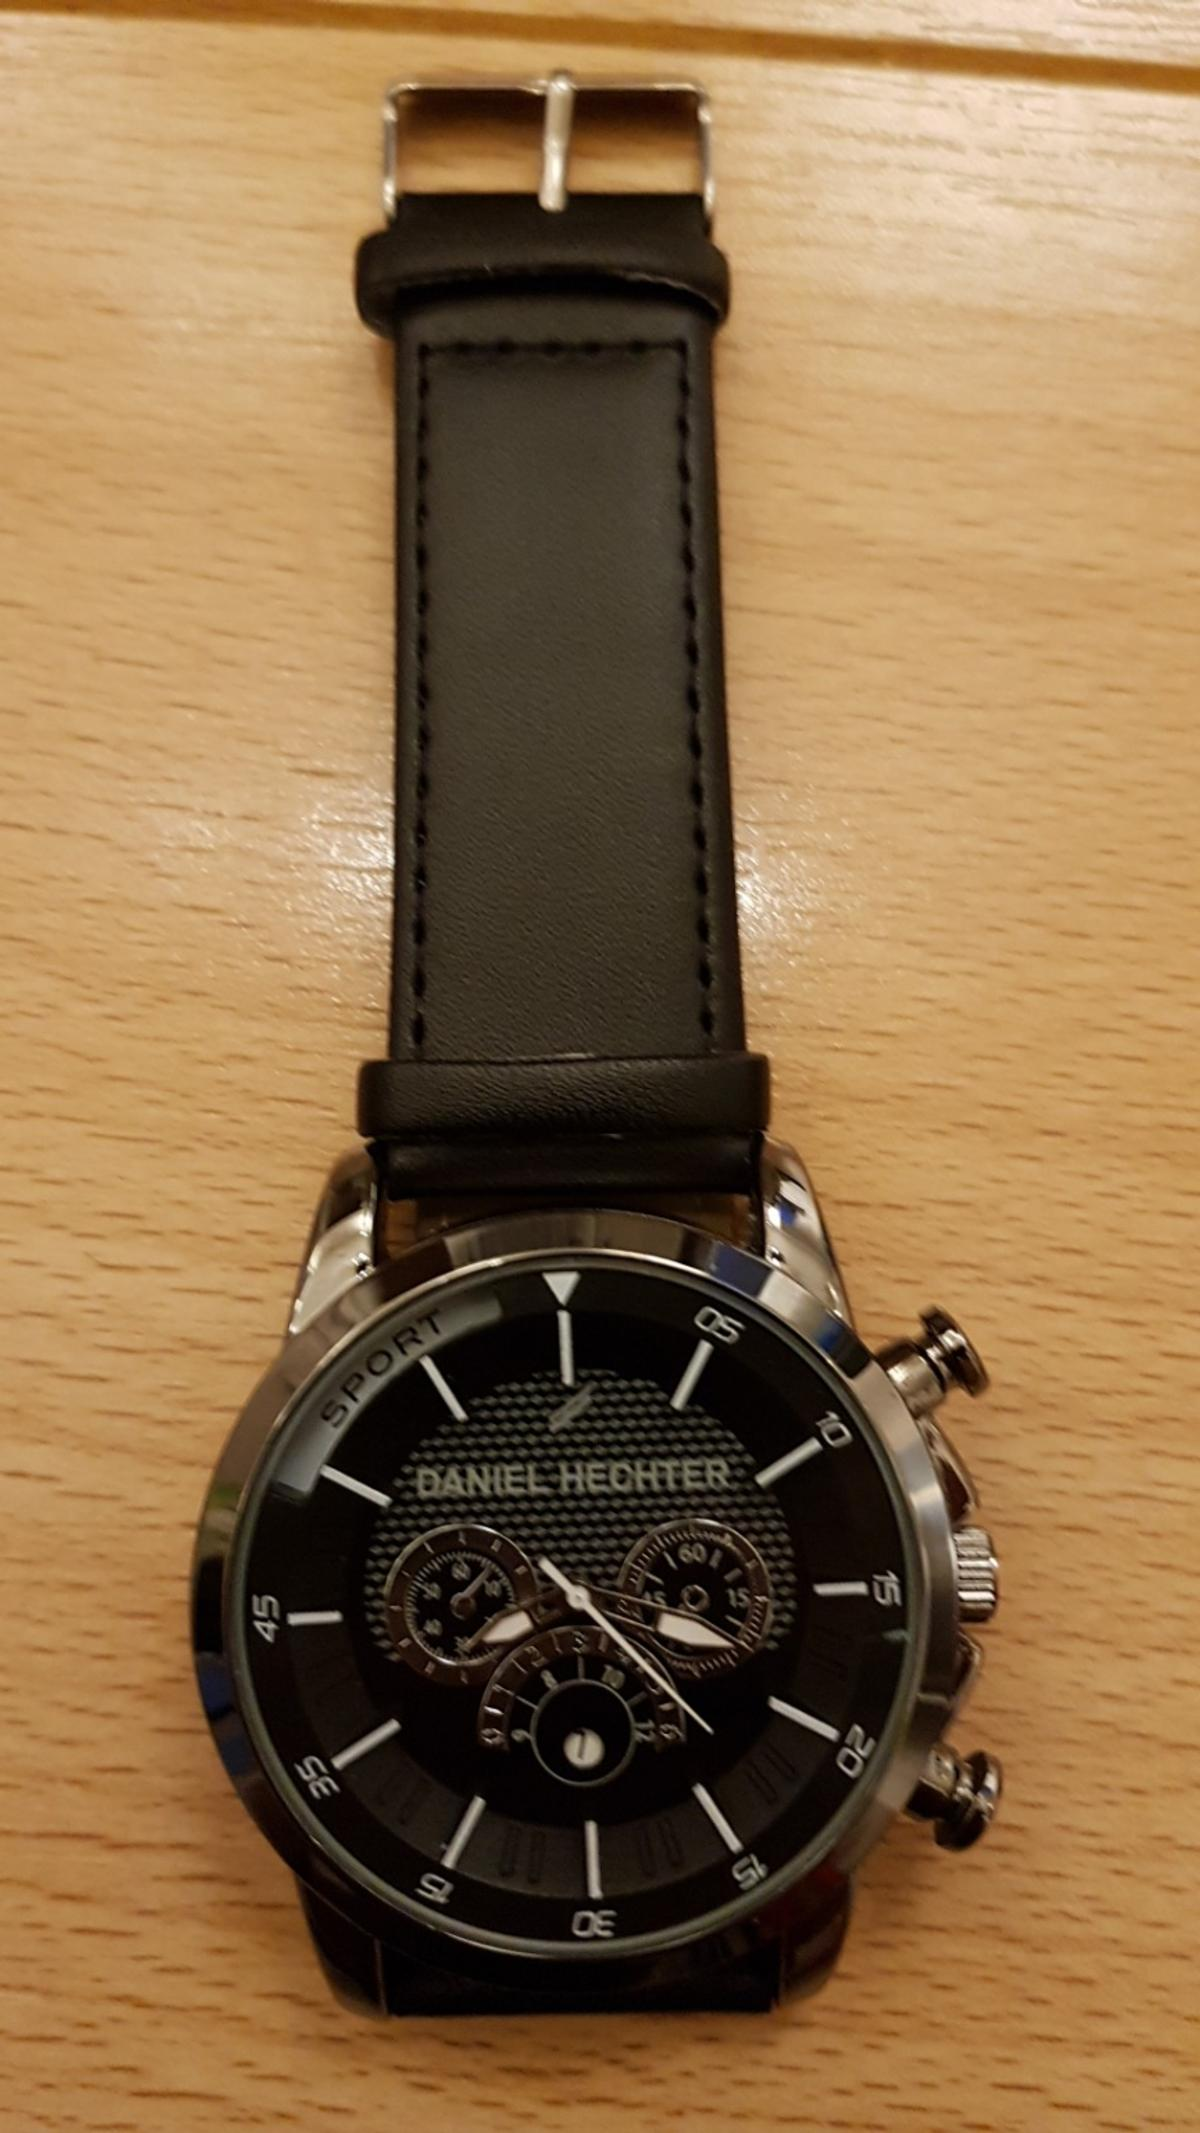 Verwonderend Daniel Hechter Watch - New in LE3 Blaby for £10.00 for sale - Shpock FF-39